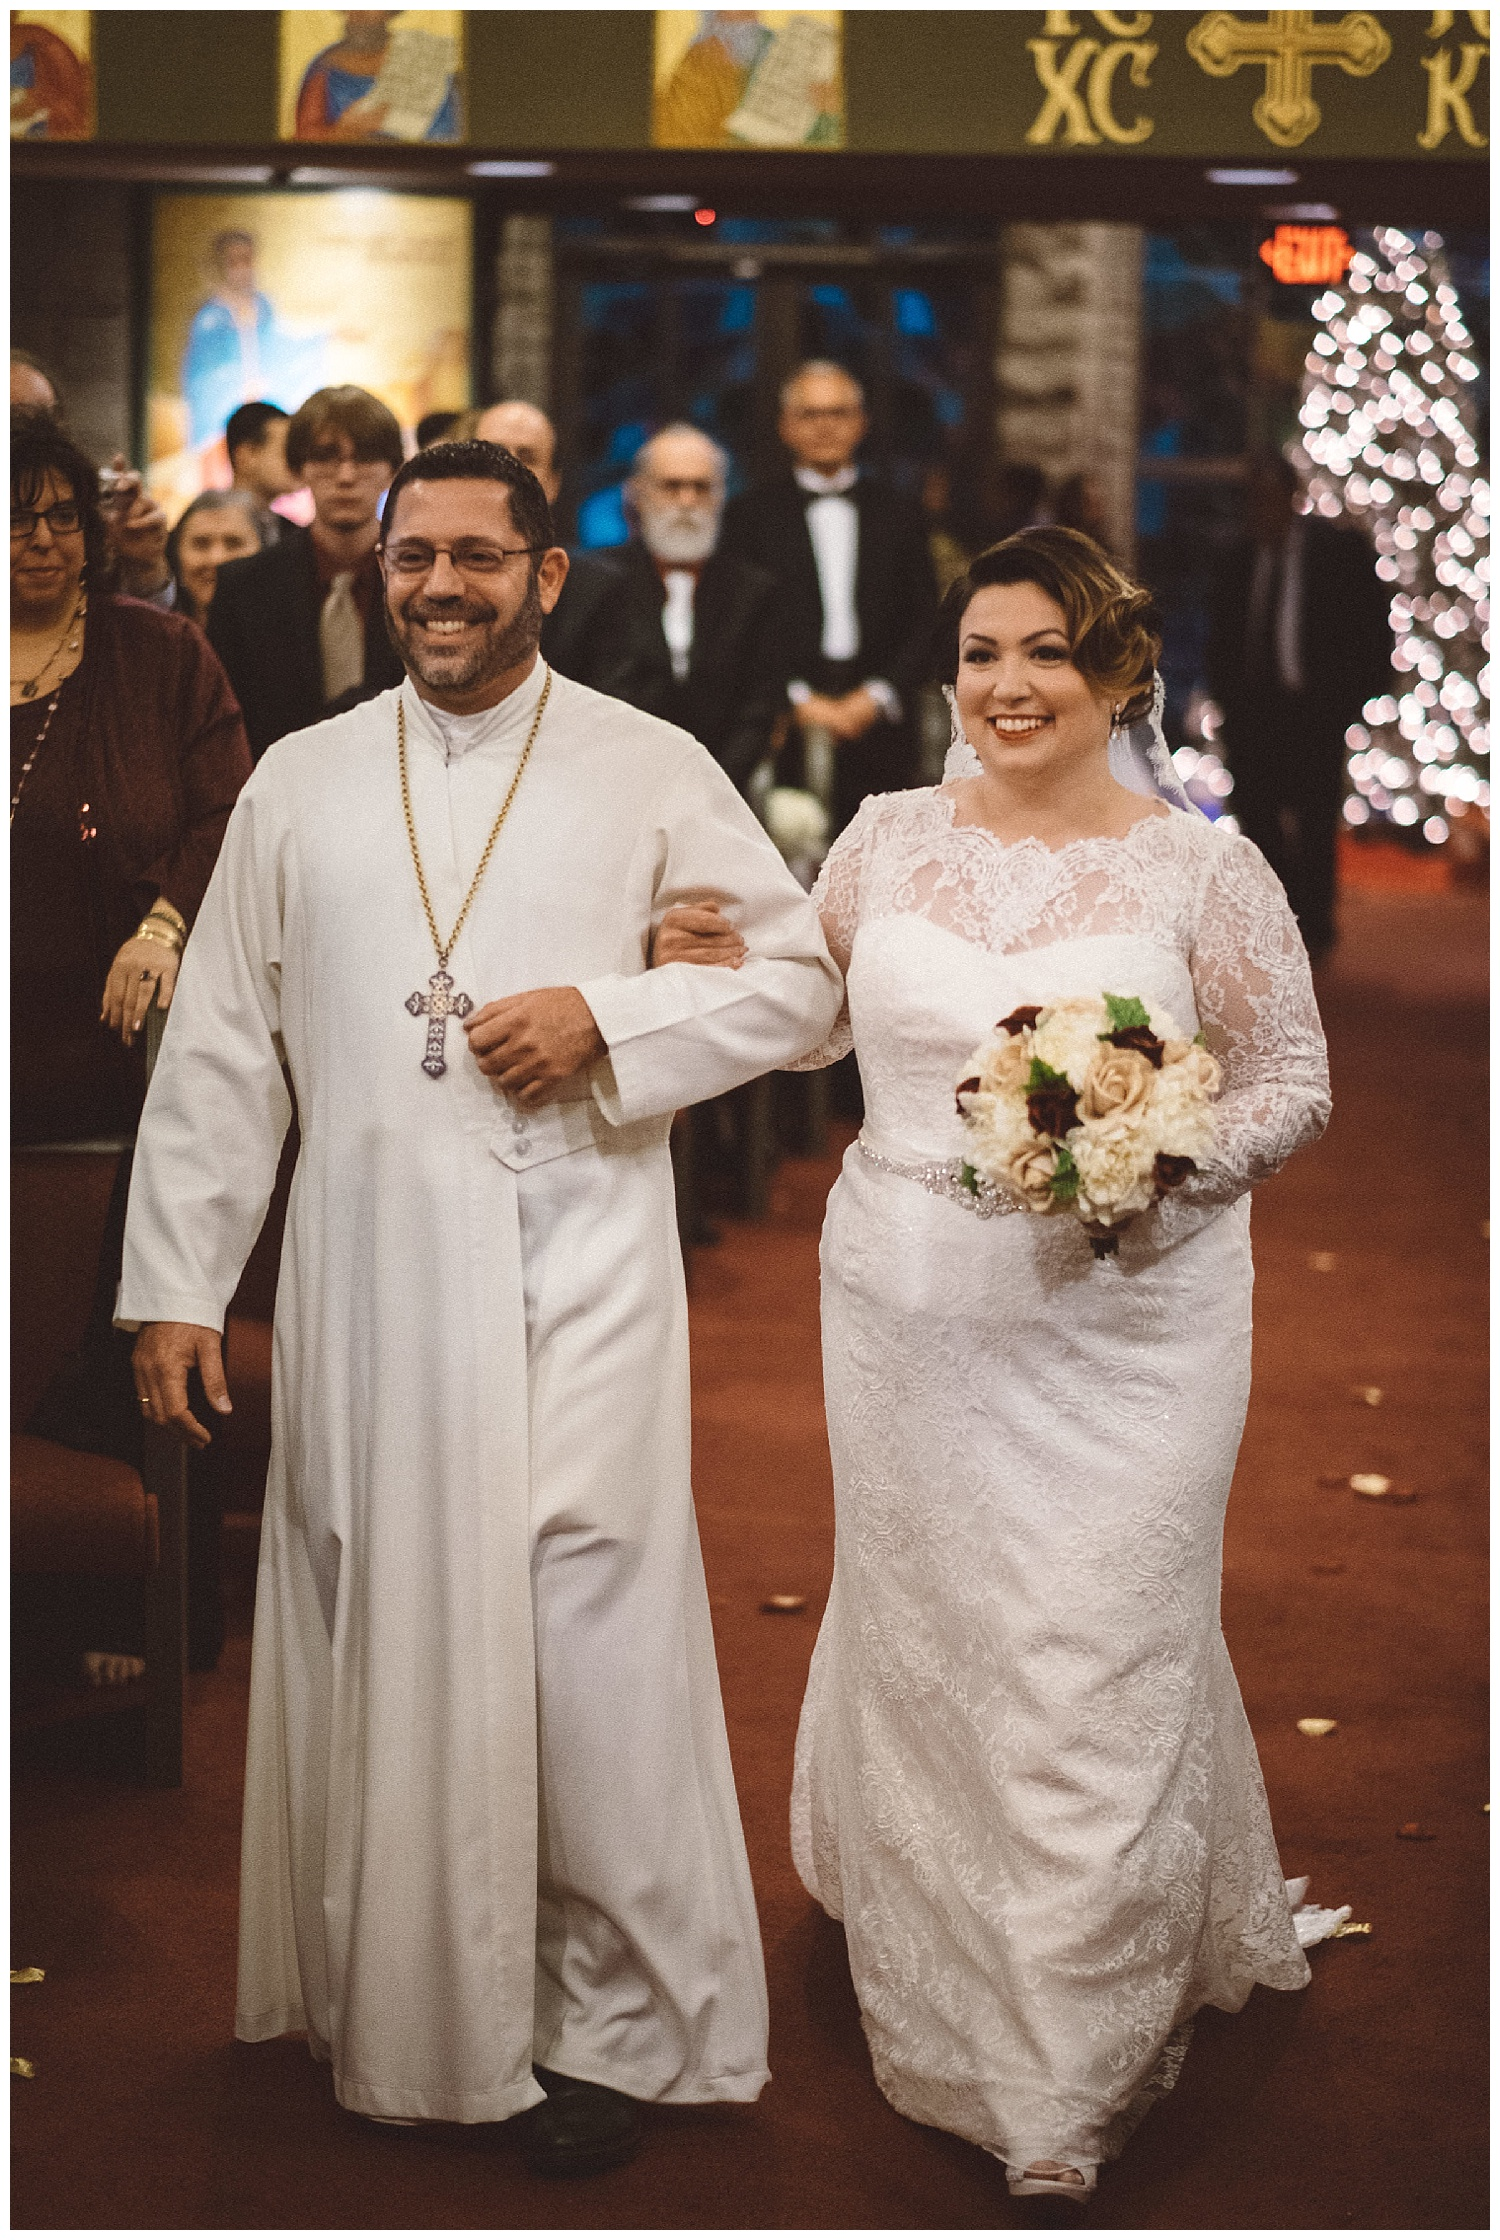 Bride walks down the aisle with Fr Michael Nasser at St Luke's Orthodox Church